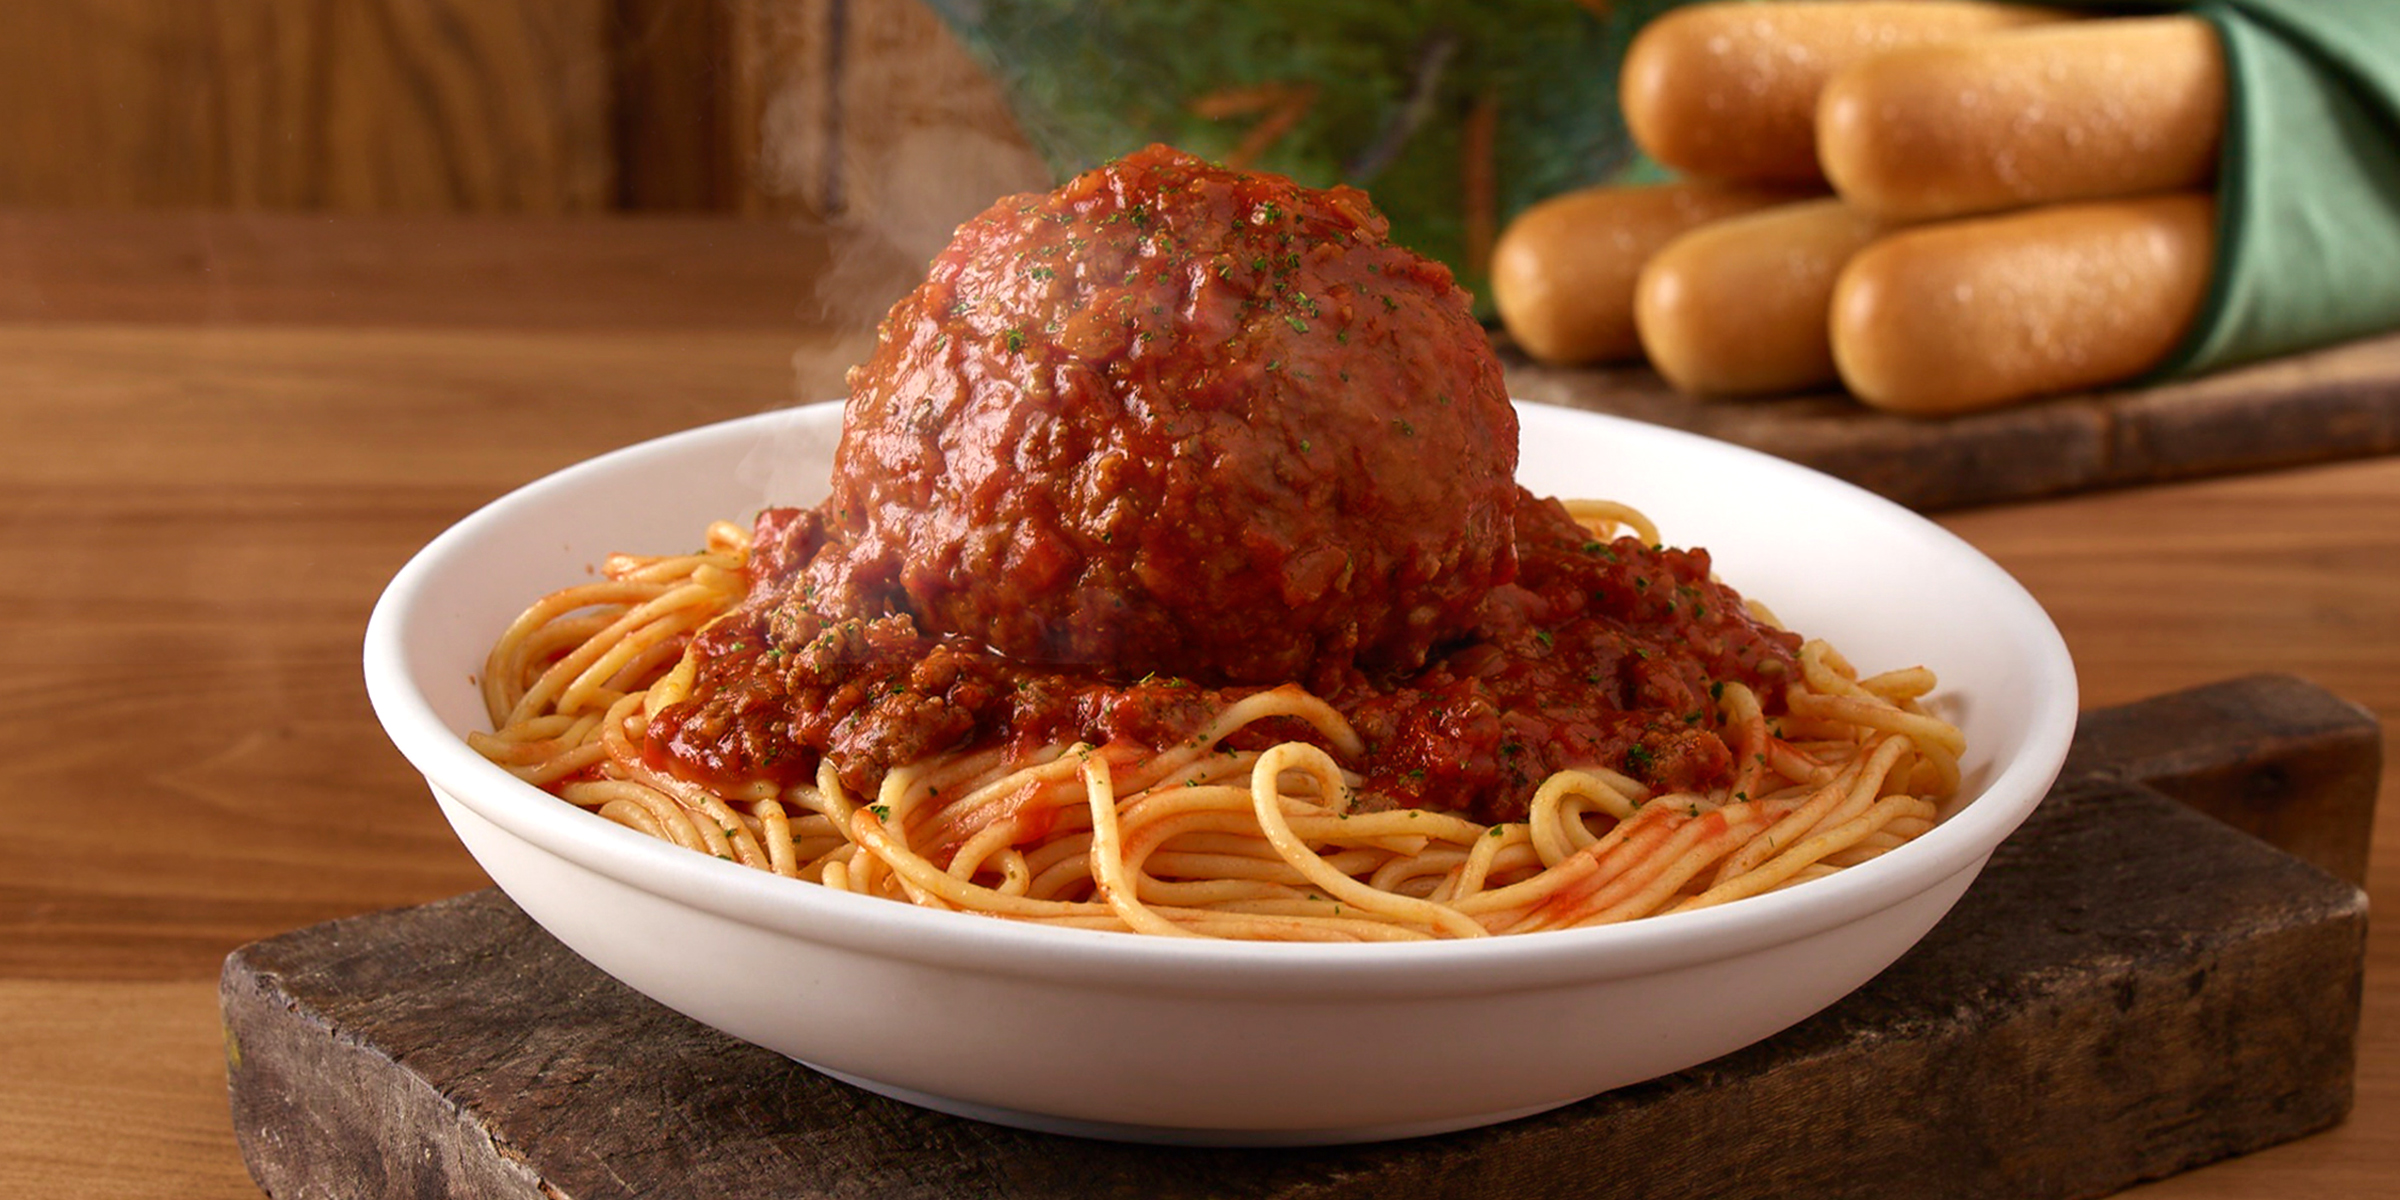 Olive Garden Debuts Giant Meatball And Giant Chicken Parmesan